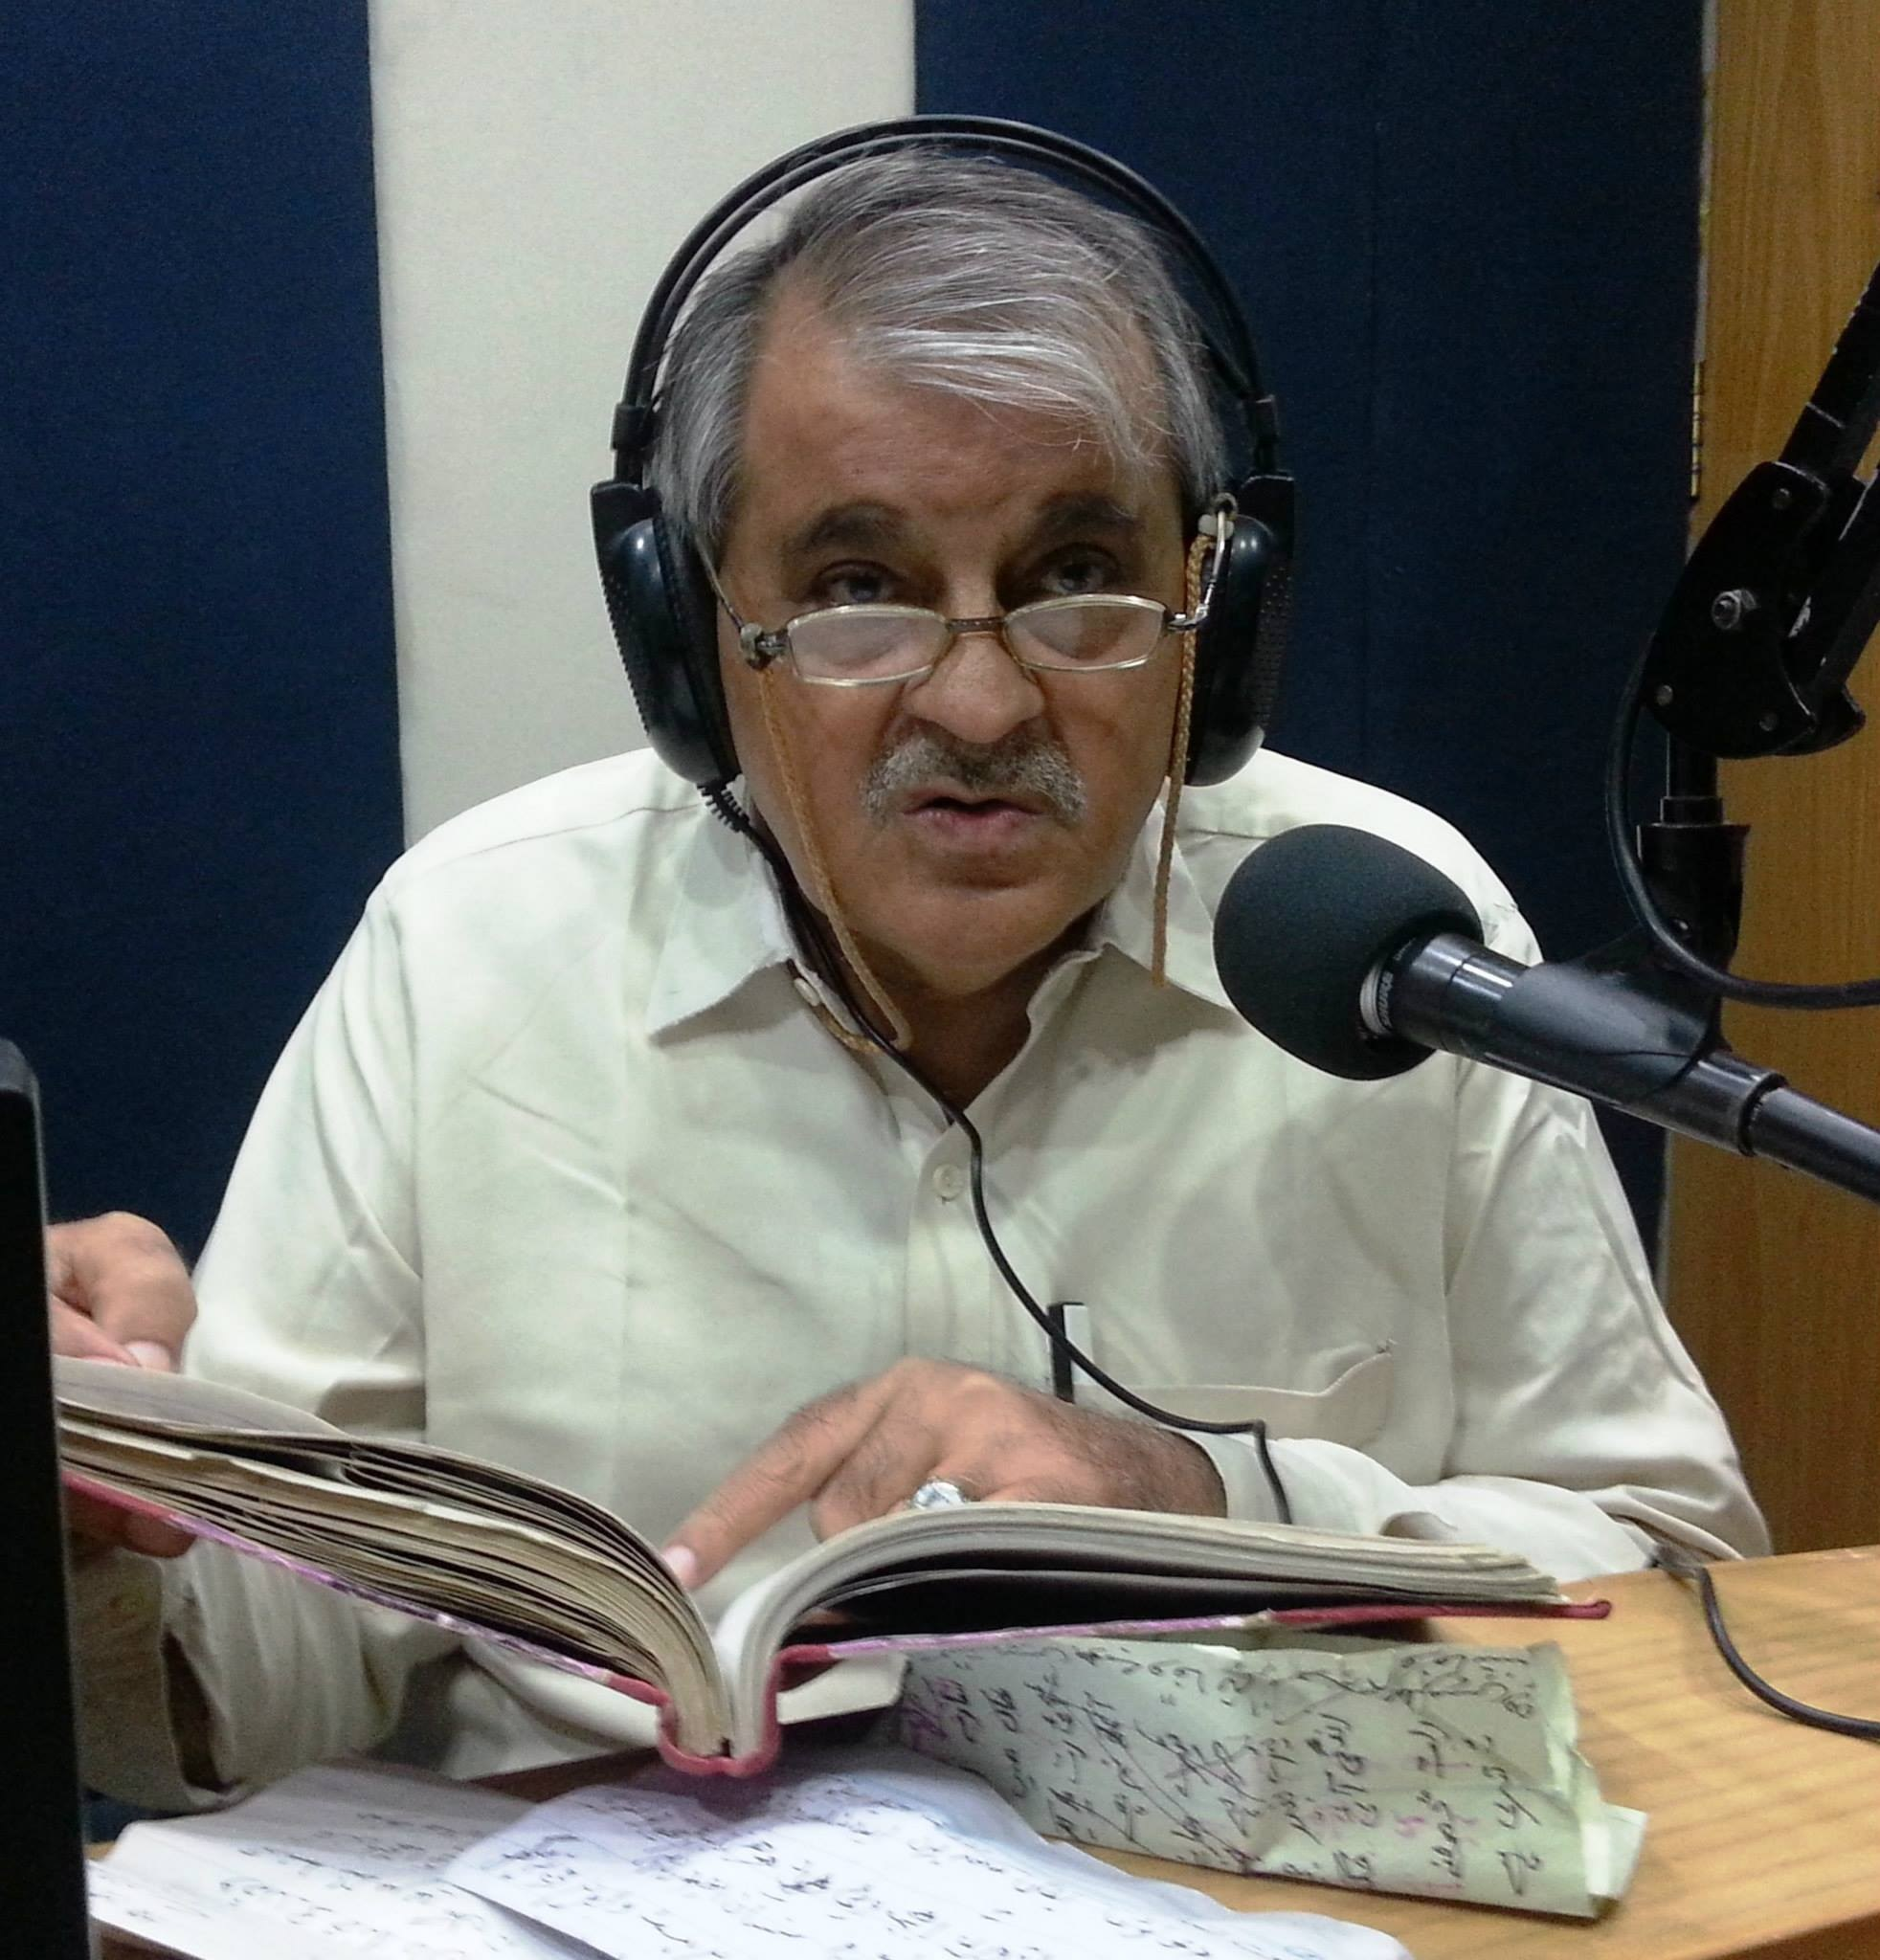 Words Are Pearls, Full of Colors And Whiff- Maqsood Gul- Sindh Courier-in a Radio Program at Hot FM 105